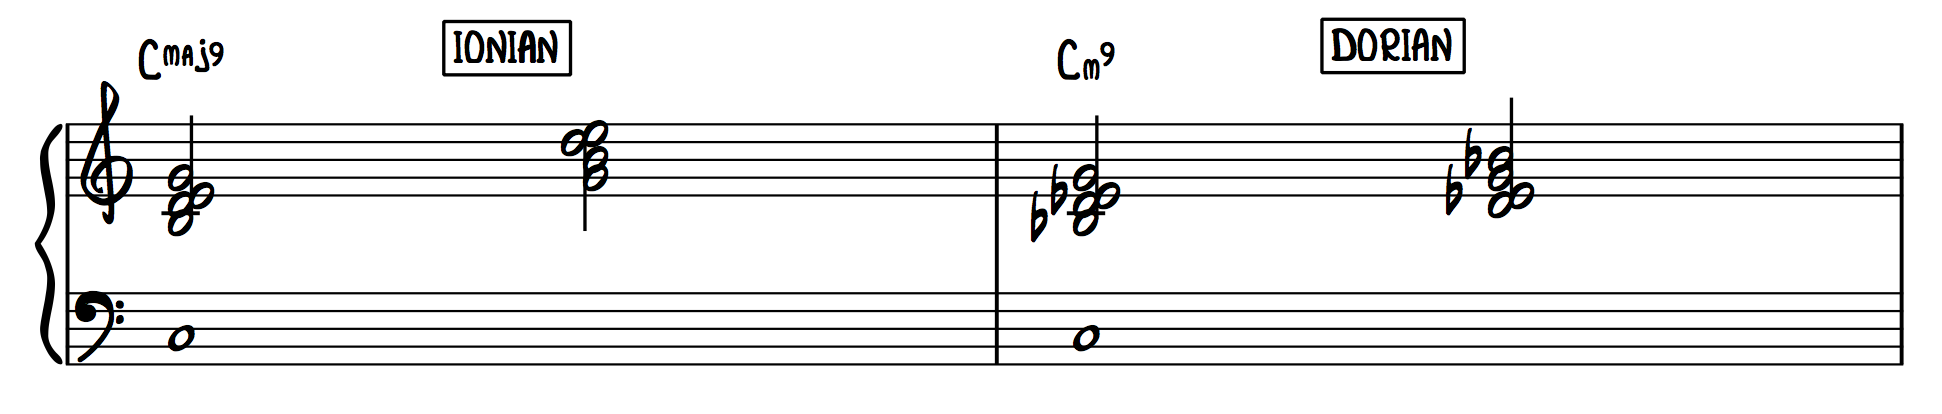 23 - Ionian & Dorian Voicings